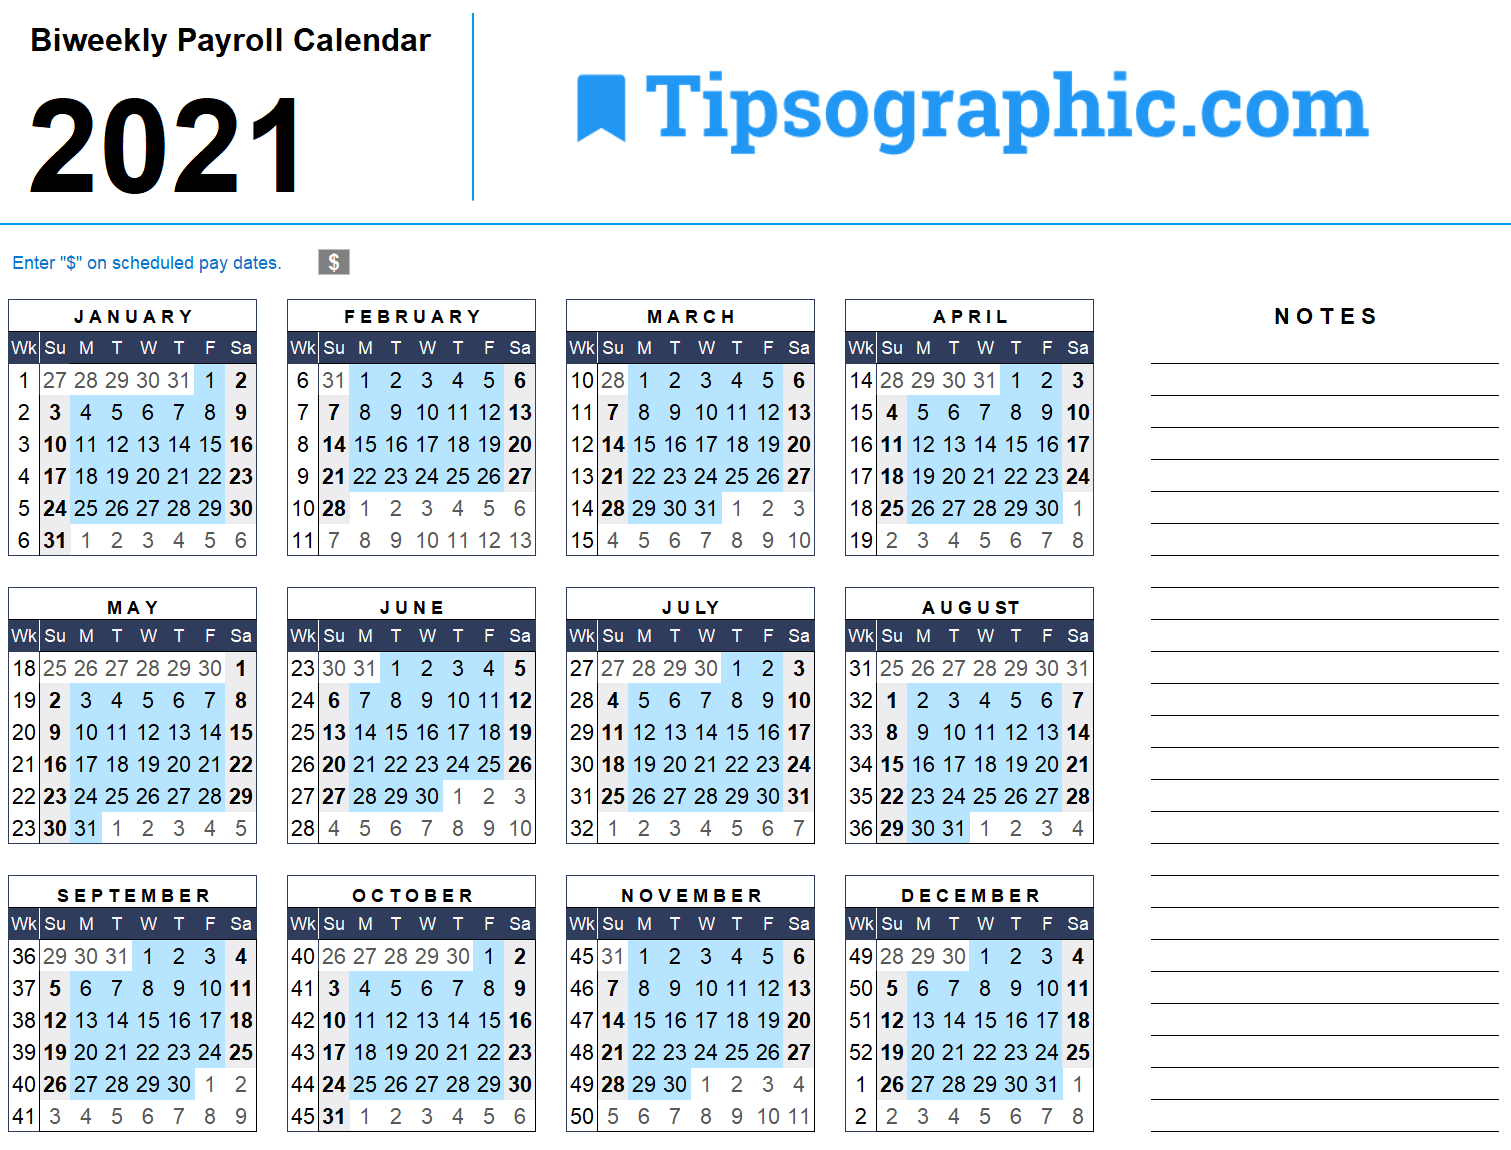 Download The 2021 Biweekly Payroll Calendar Tipsographic